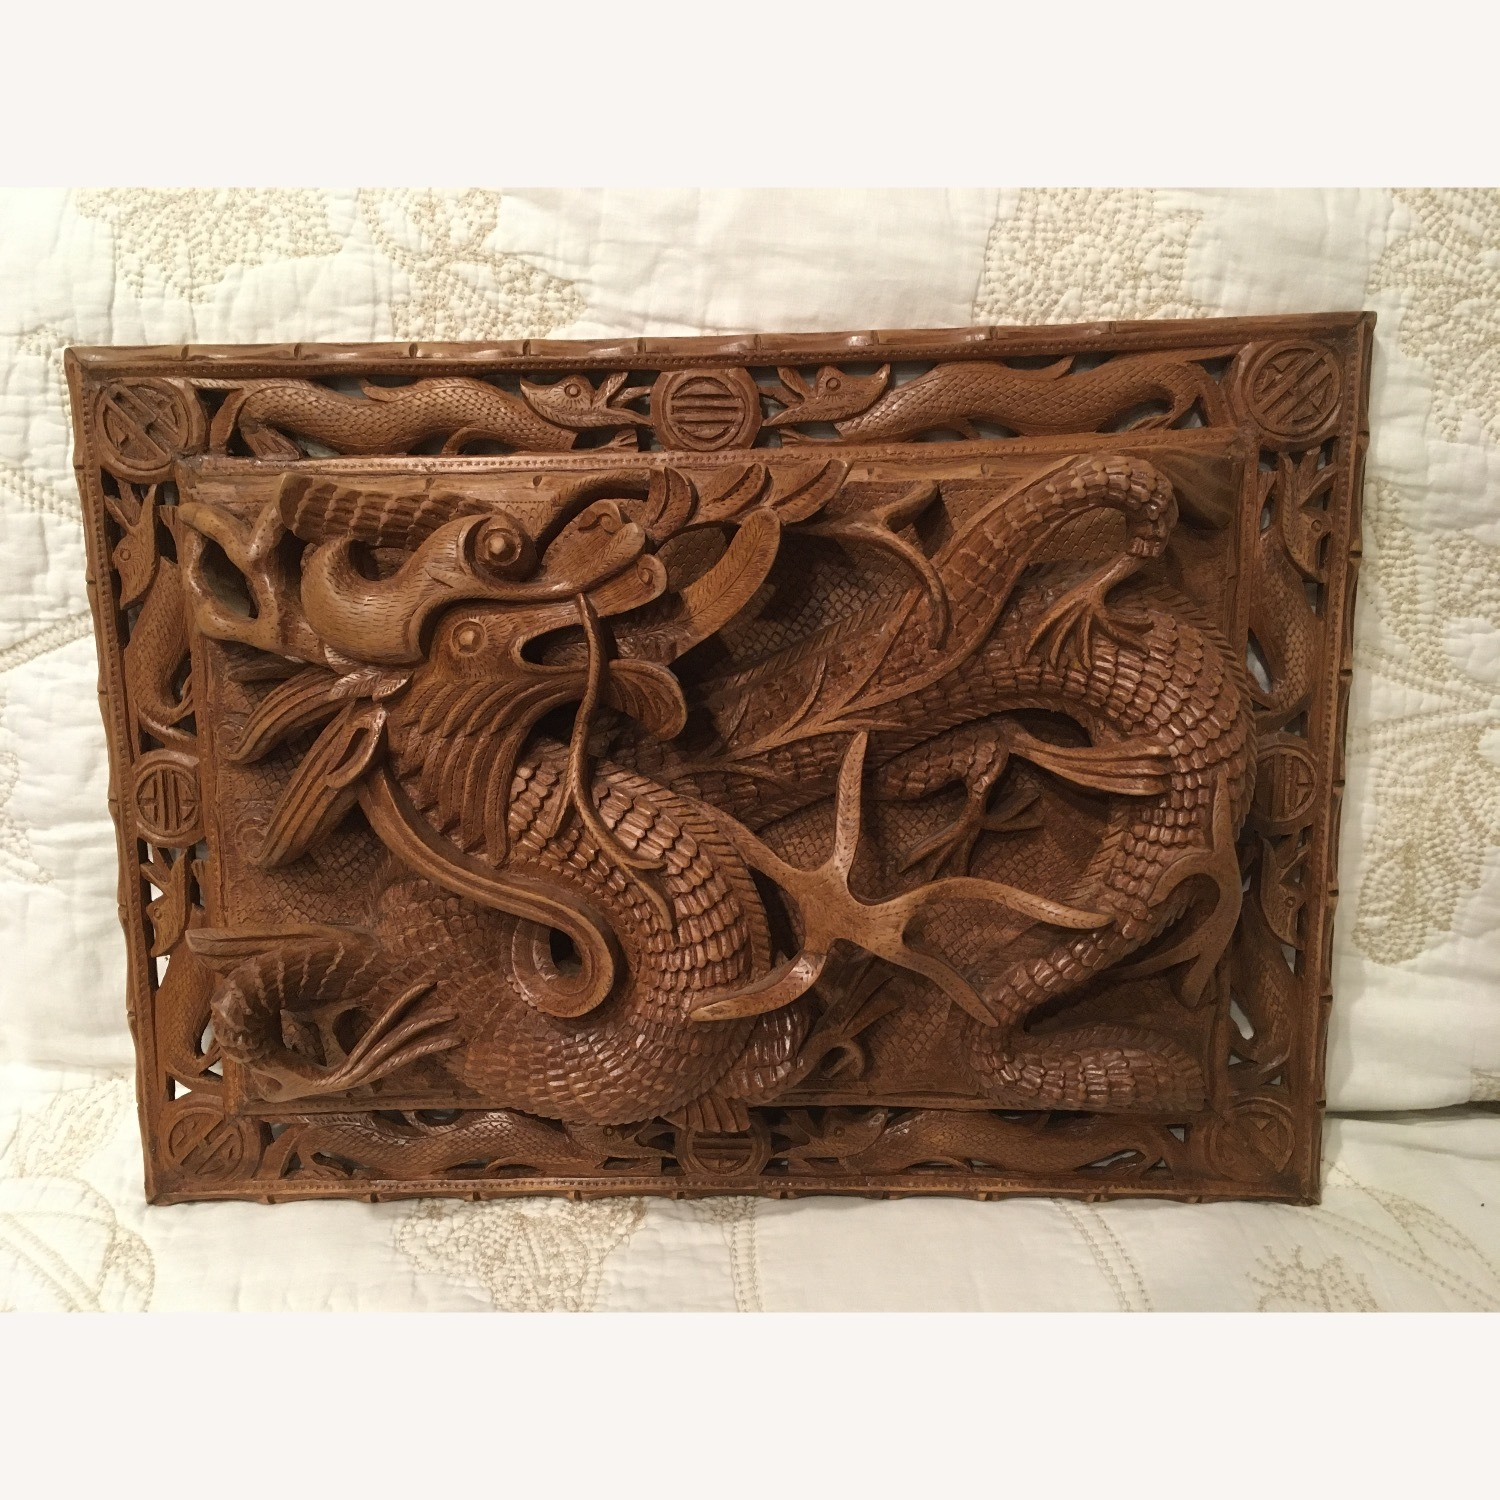 Original Indian Woodcraft Panels with Dragons - image-2